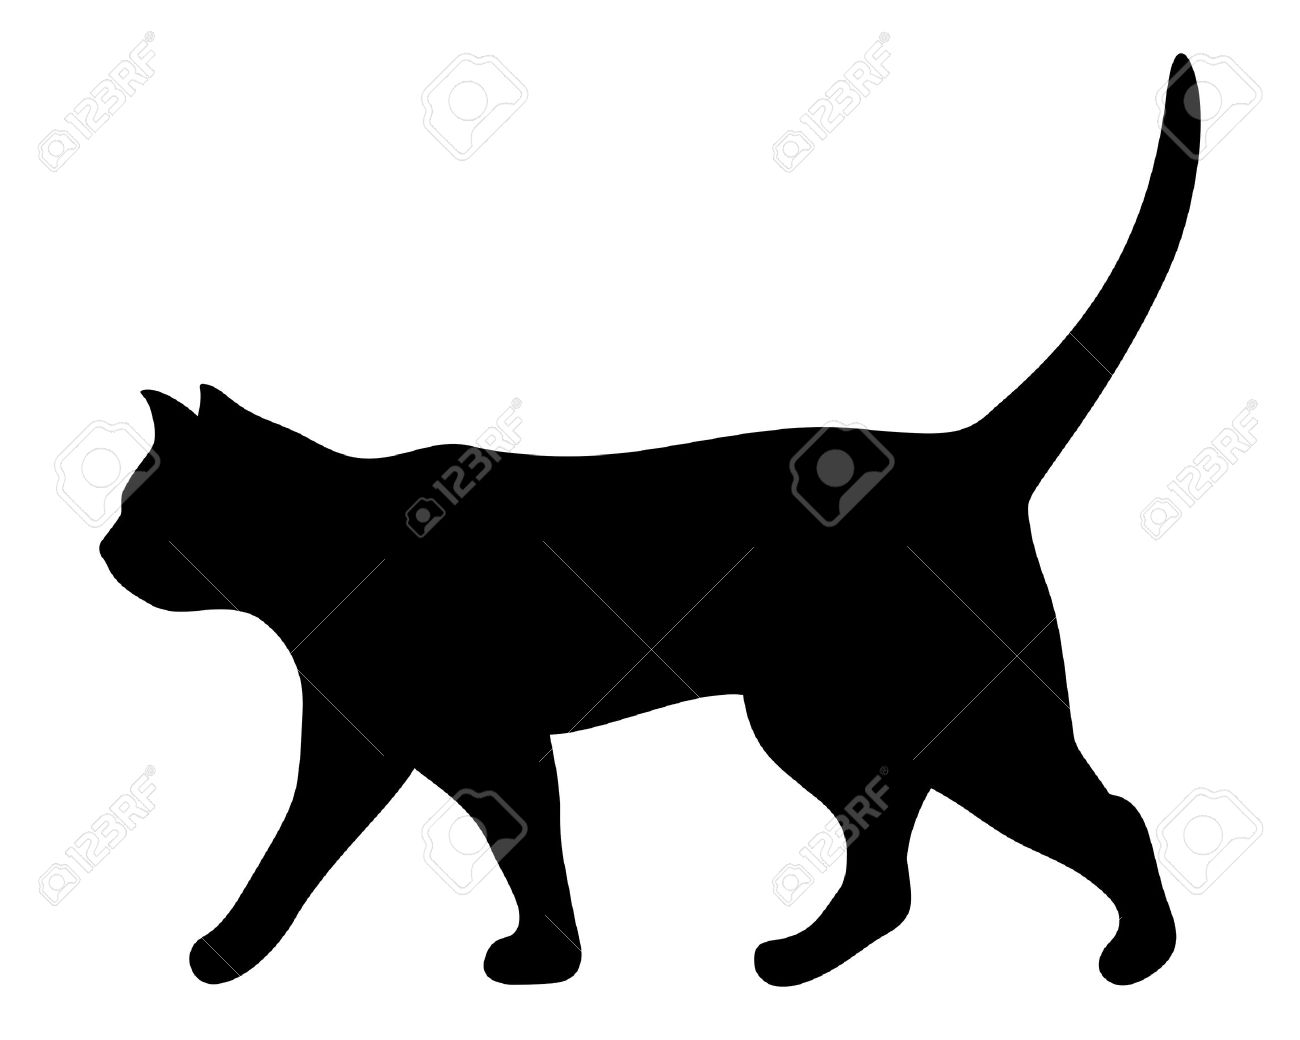 Vector black silhouette of a walking cat. - 56884483